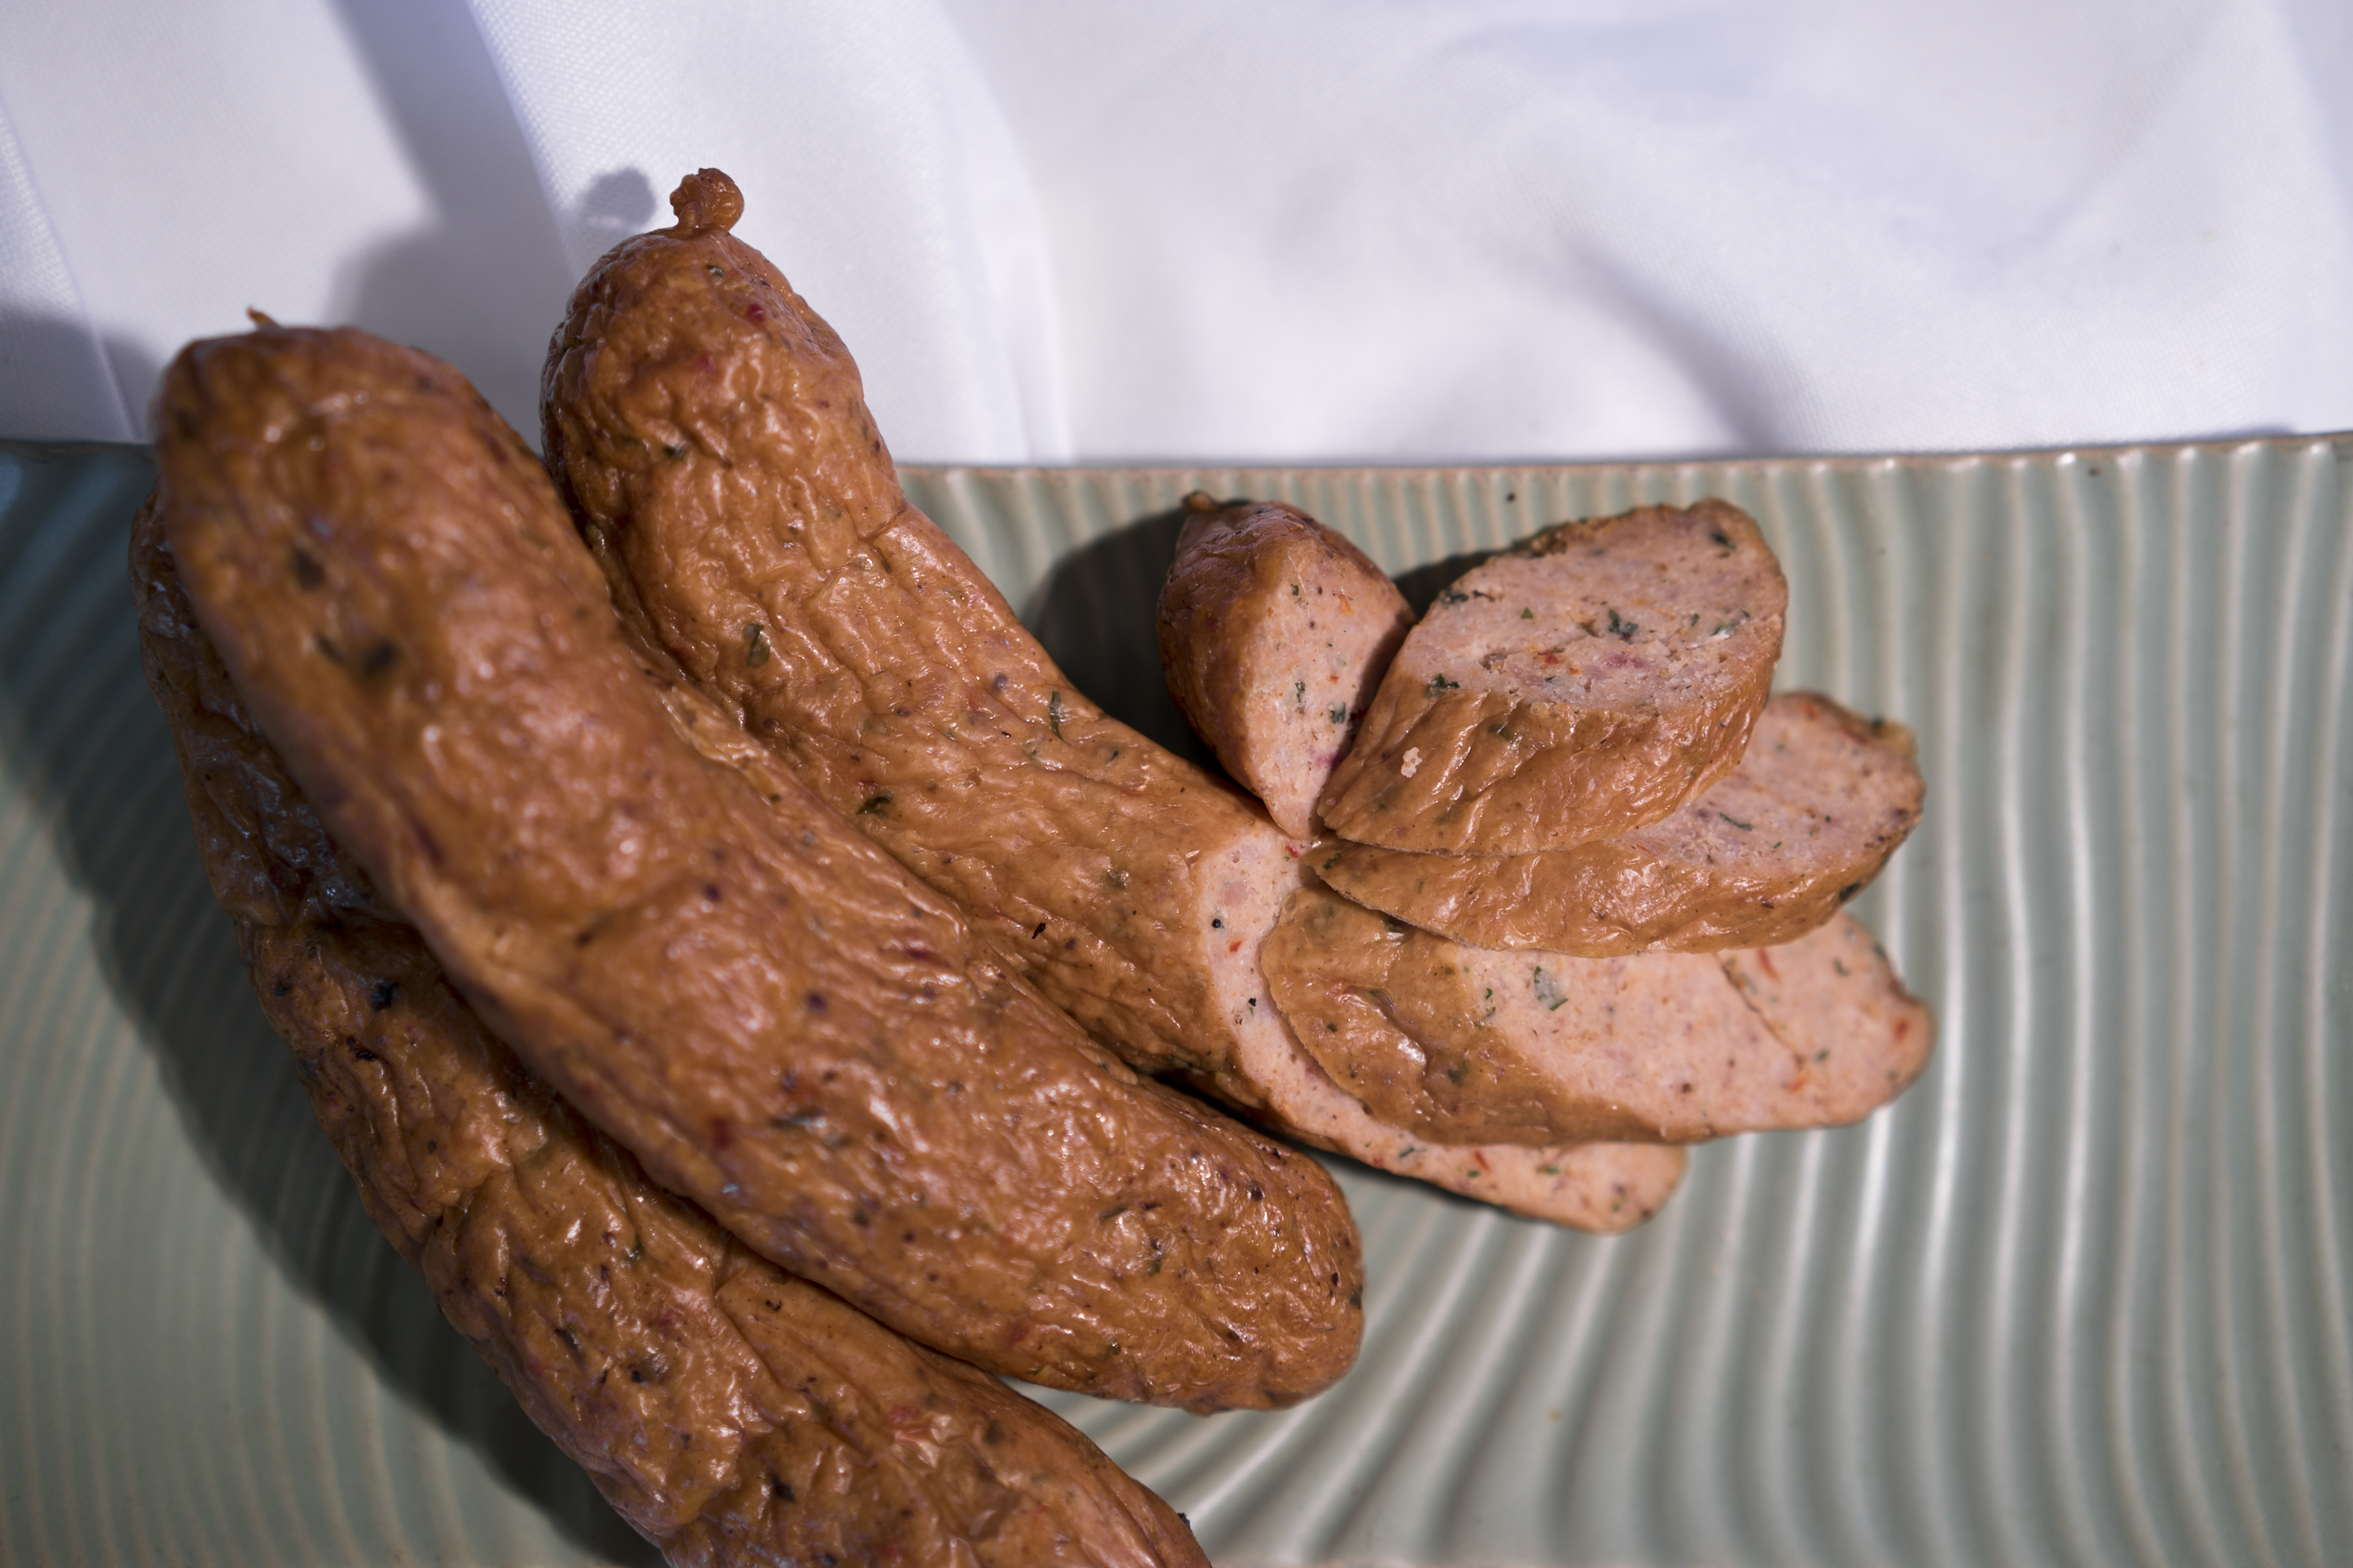 One of Northern Waters' most unique offerings is their whitefish sausage.